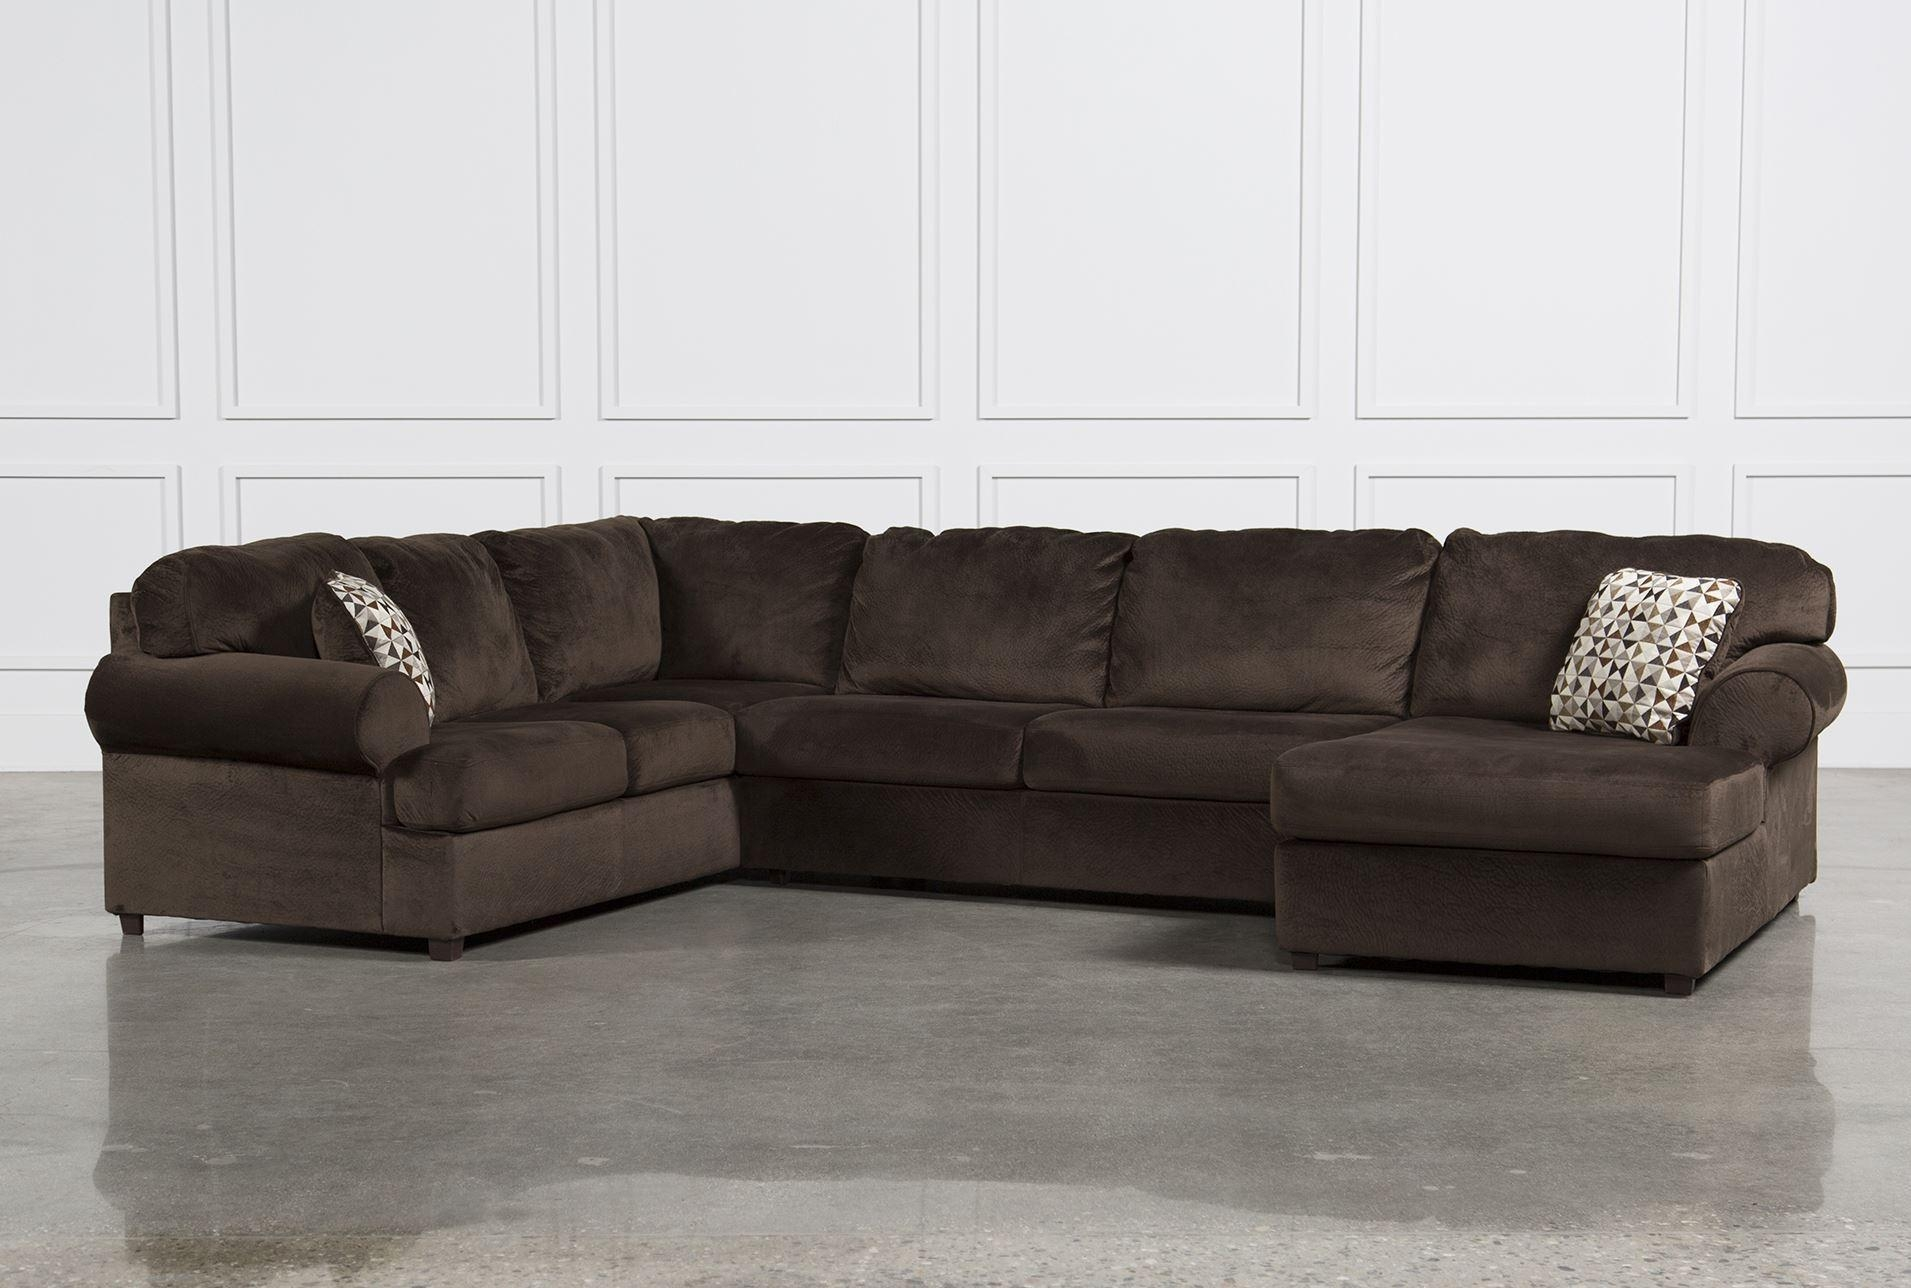 Astonishing Plush Sectional Sofas 80 For Your Sealy Posturepedic Throughout Sealy Sofas (Image 3 of 20)